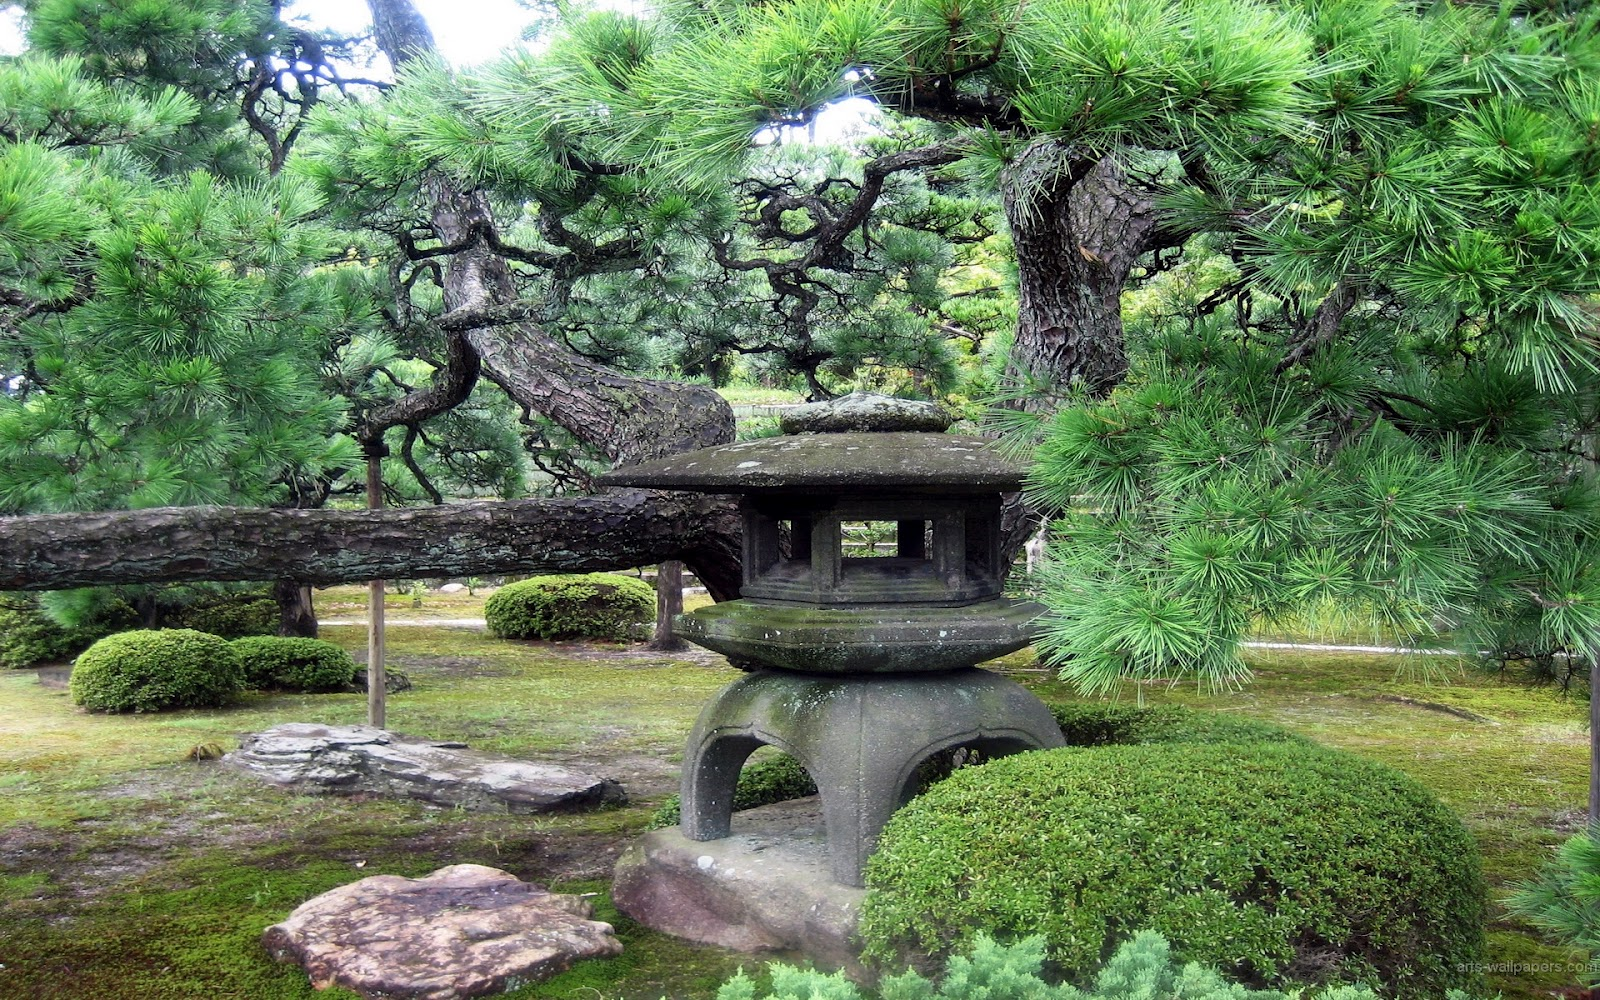 Japanese Garden Wallpapers: [50+] Japanese Garden Wallpaper Backgrounds On WallpaperSafari